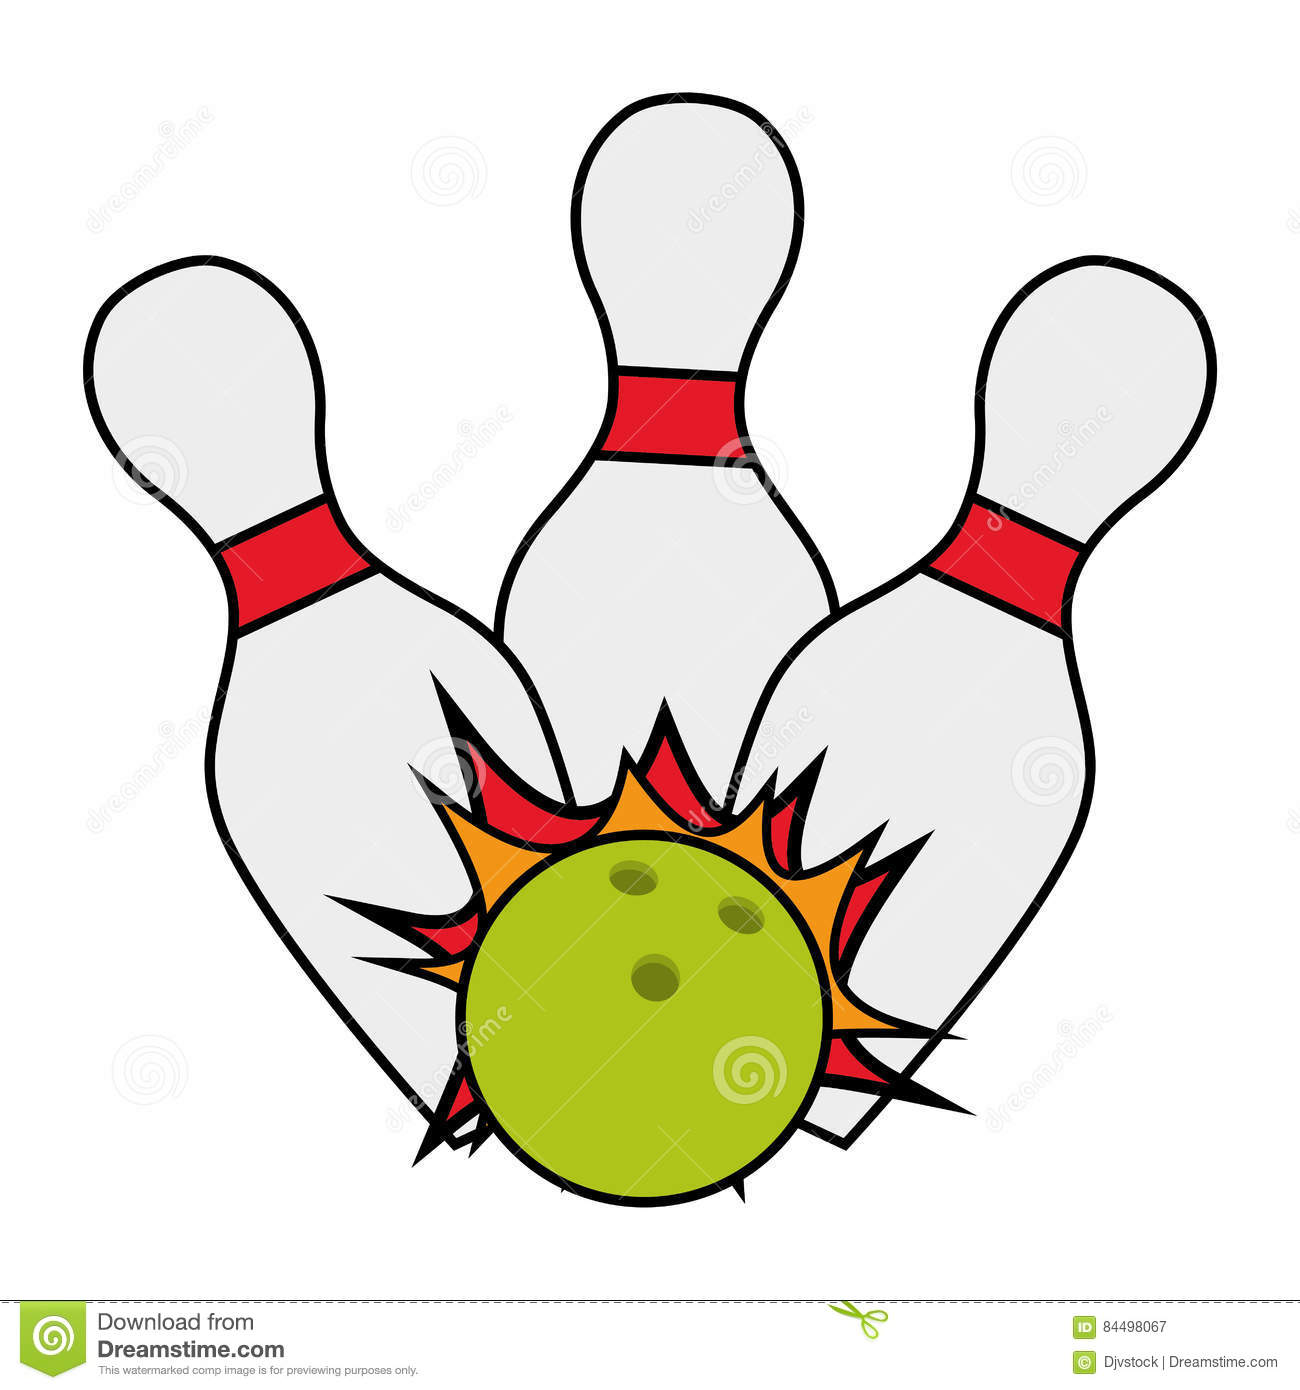 Bowling Ball Pin Strike Cartoon Stock Illustration Illustration Of Object Recreation 84498067 A chameleon king green lizard cartoon character wearing a crown illustration. dreamstime com